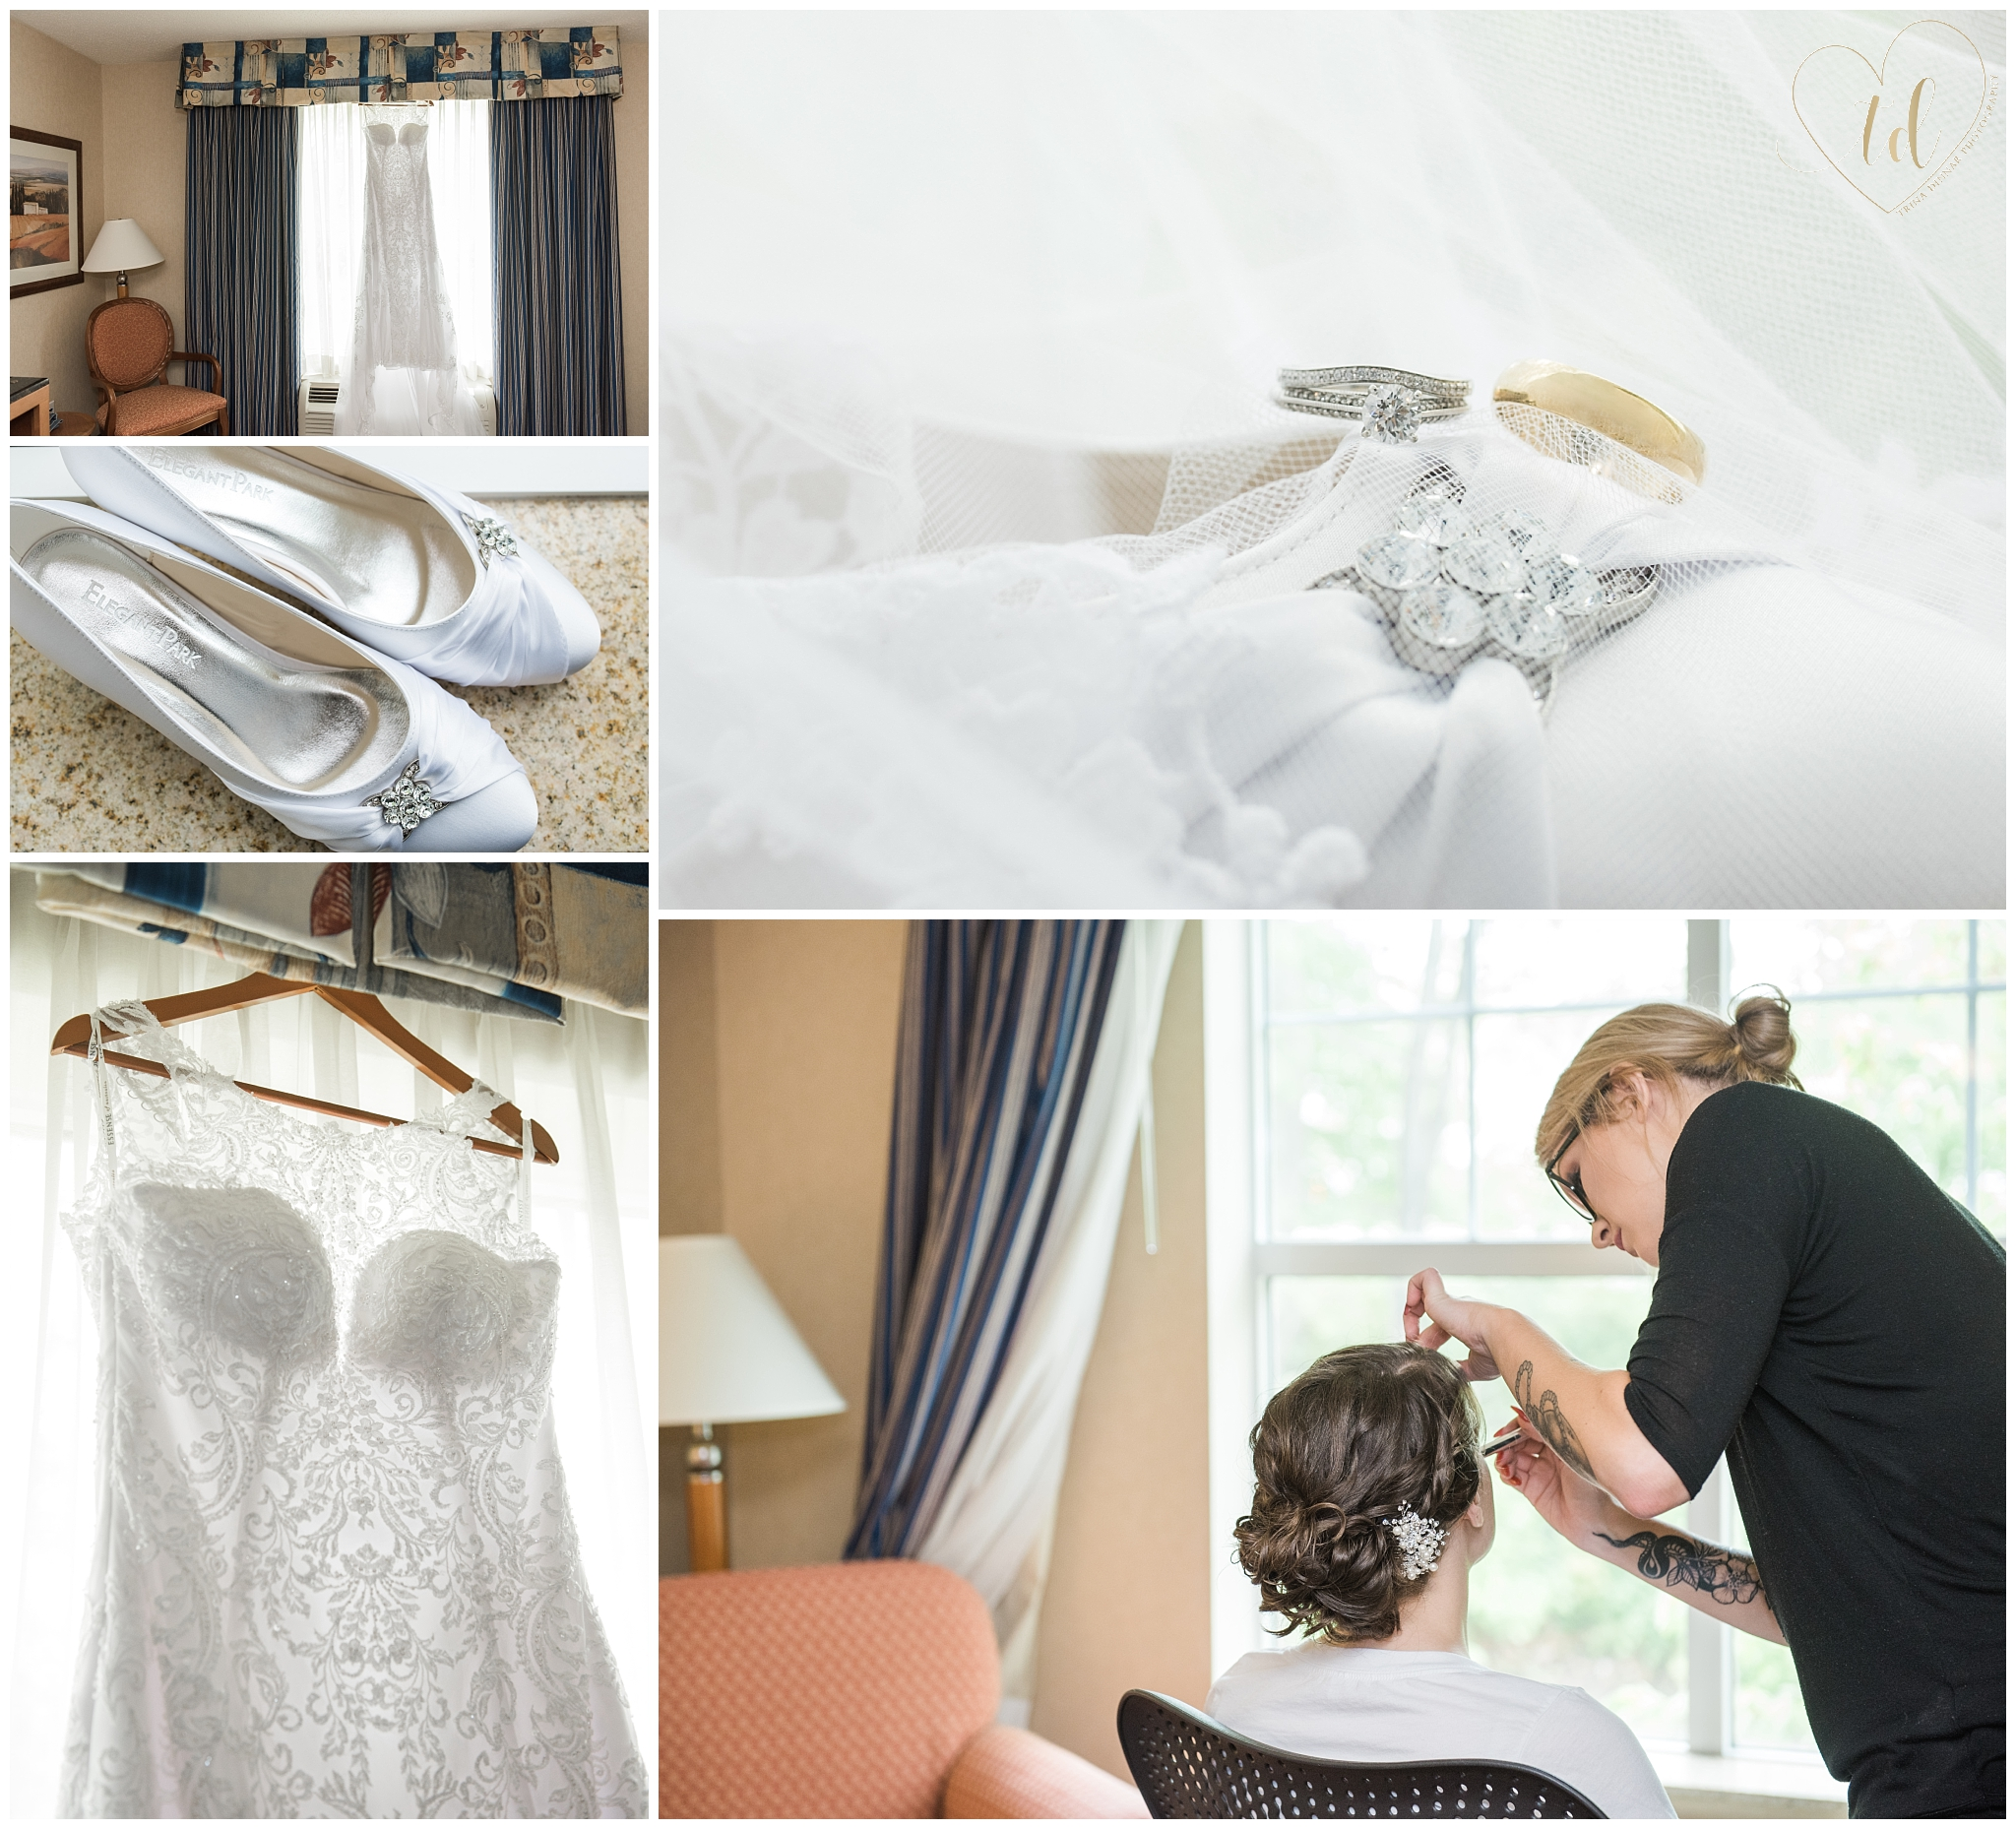 Getting ready wedding details at the Hilton Garden Inn in Downtown Freeport, Maine.